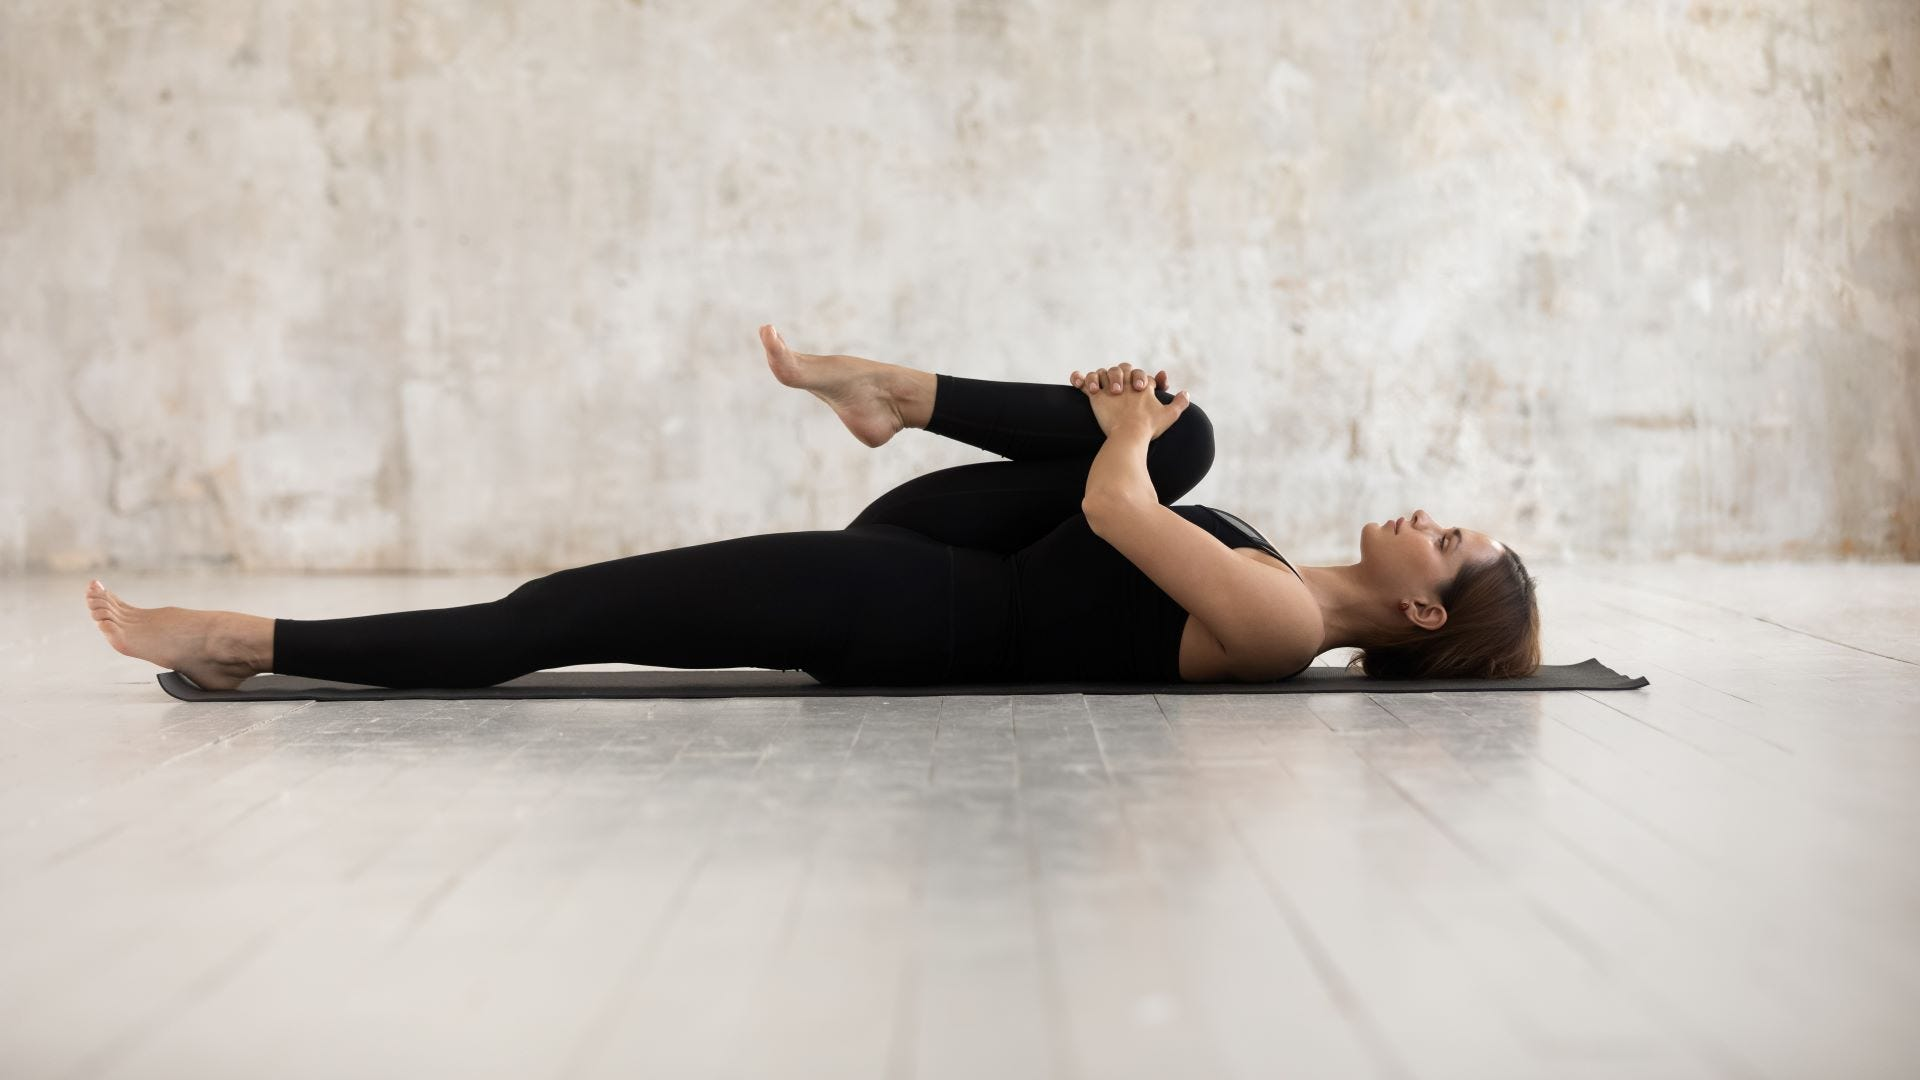 A woman lying on her back on a yoga mat clutching one knee to her chest.